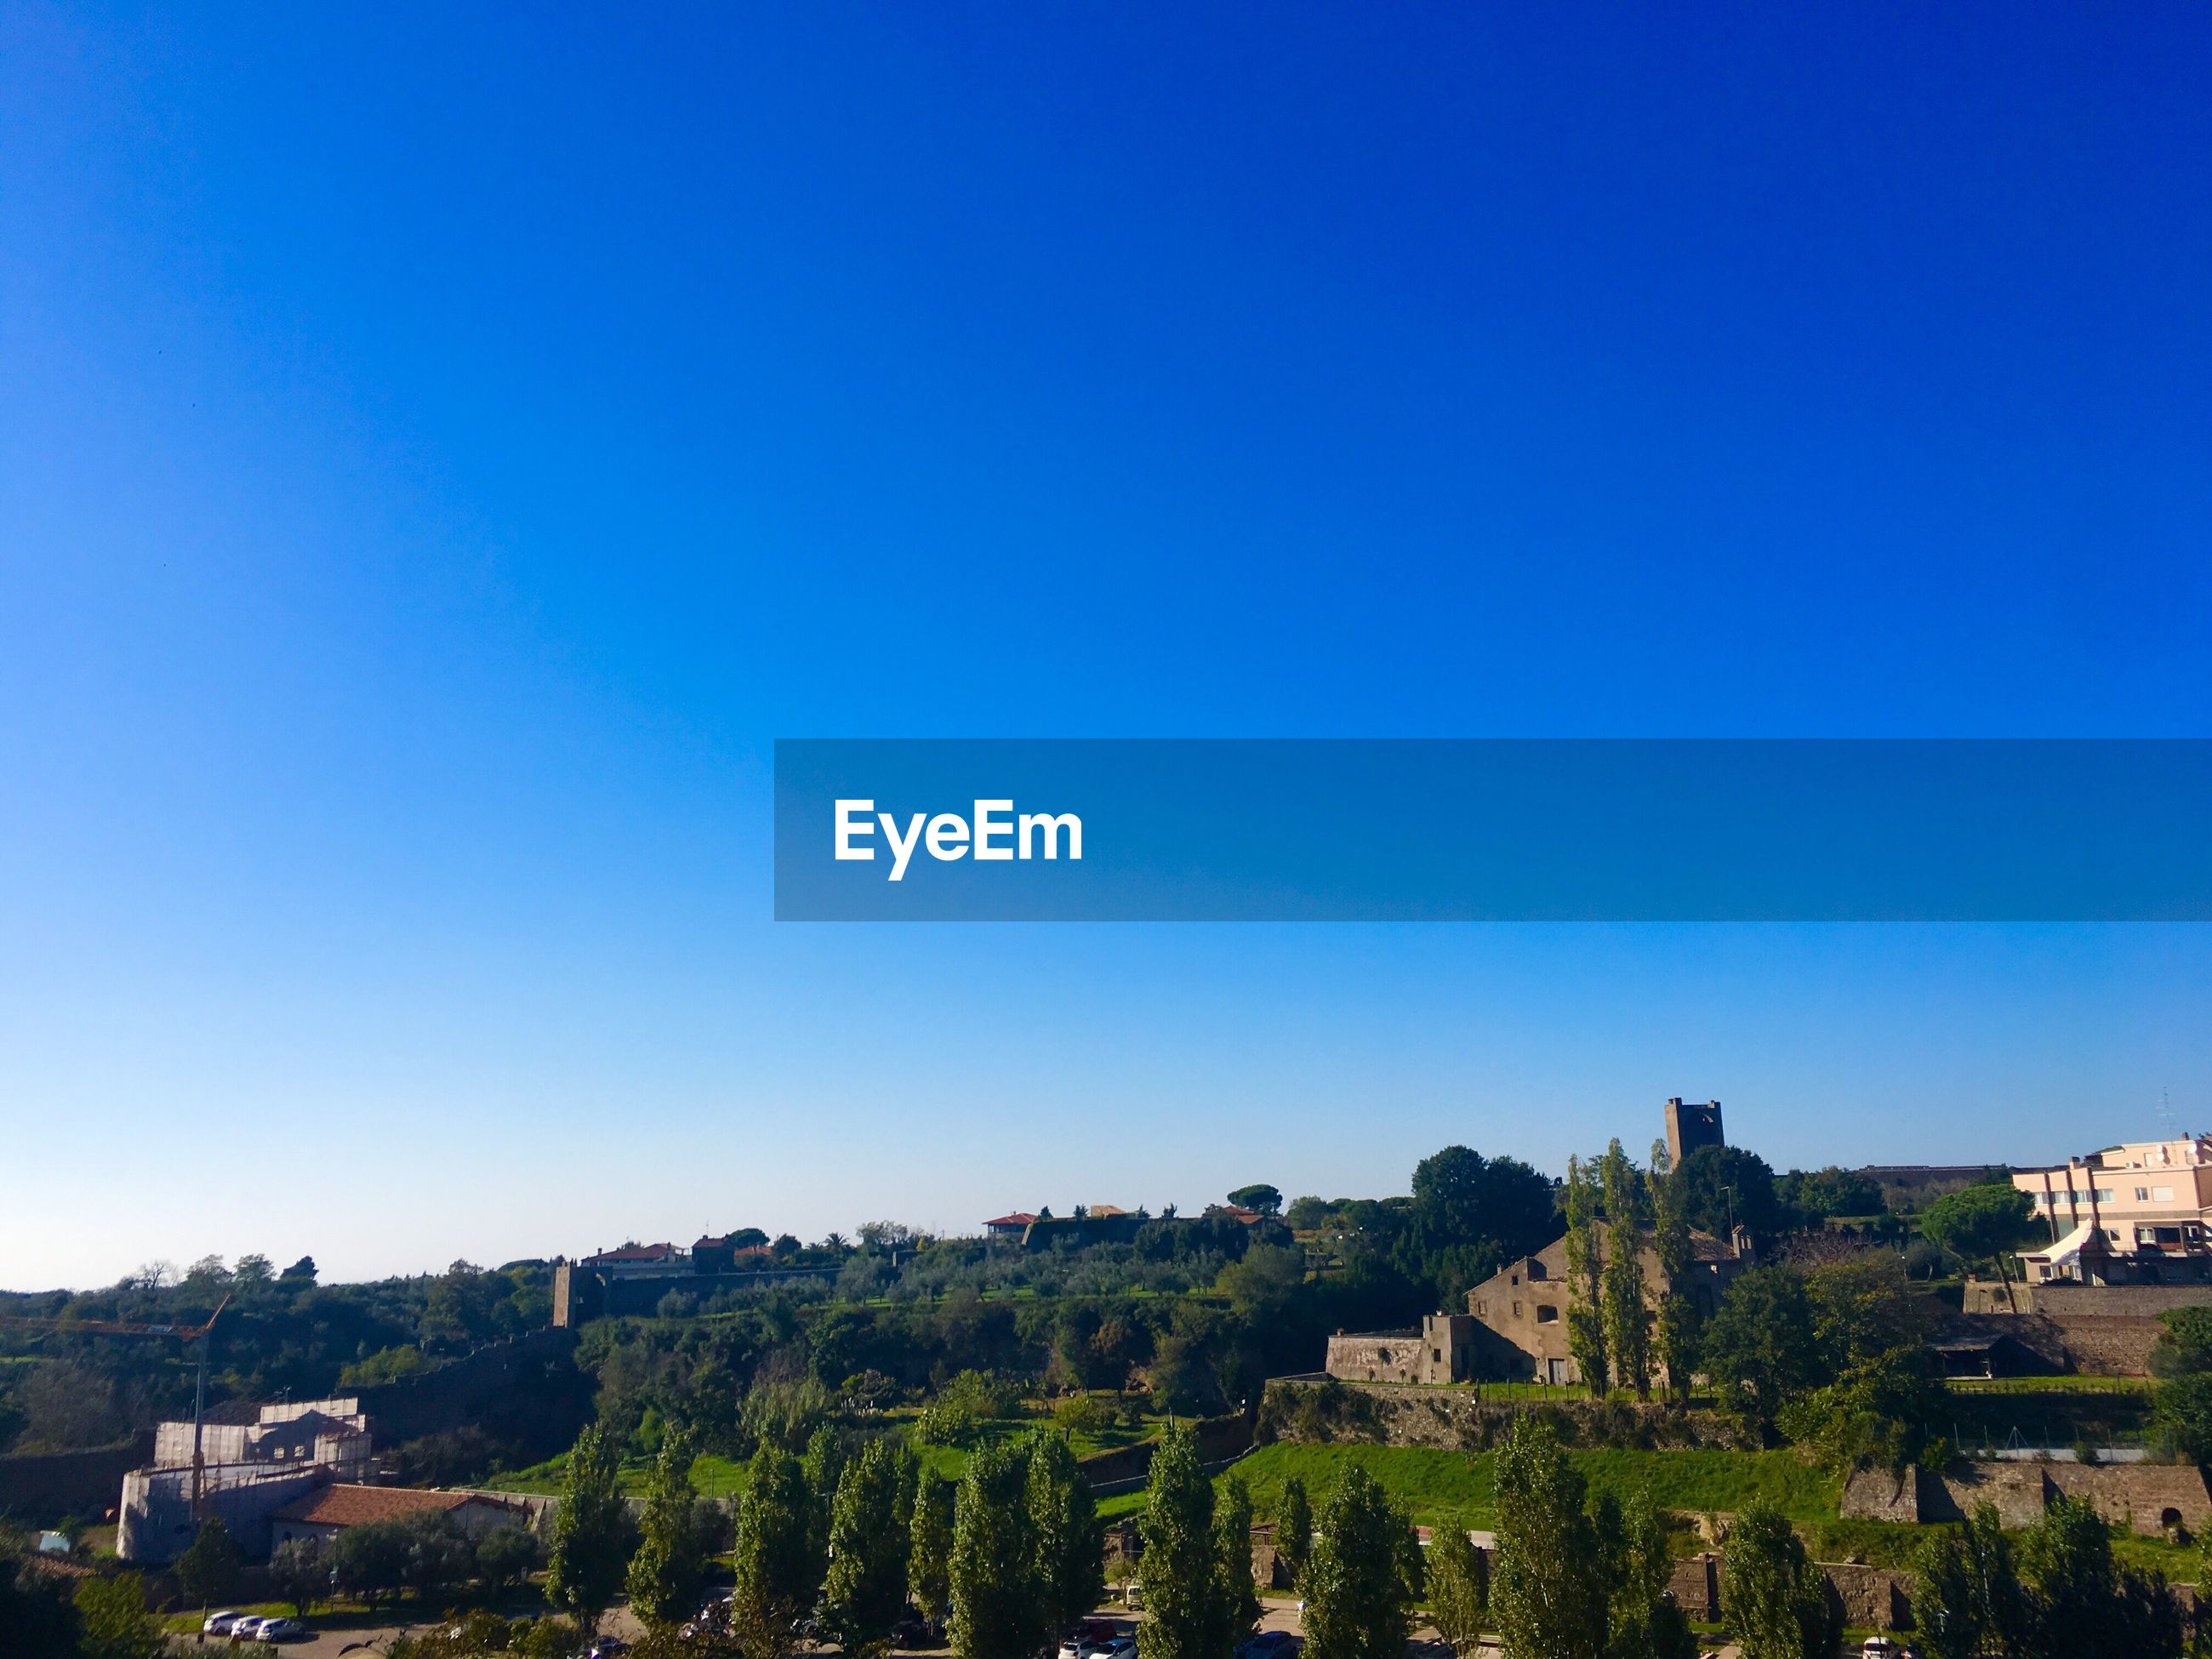 TREES AND TOWNSCAPE AGAINST CLEAR BLUE SKY